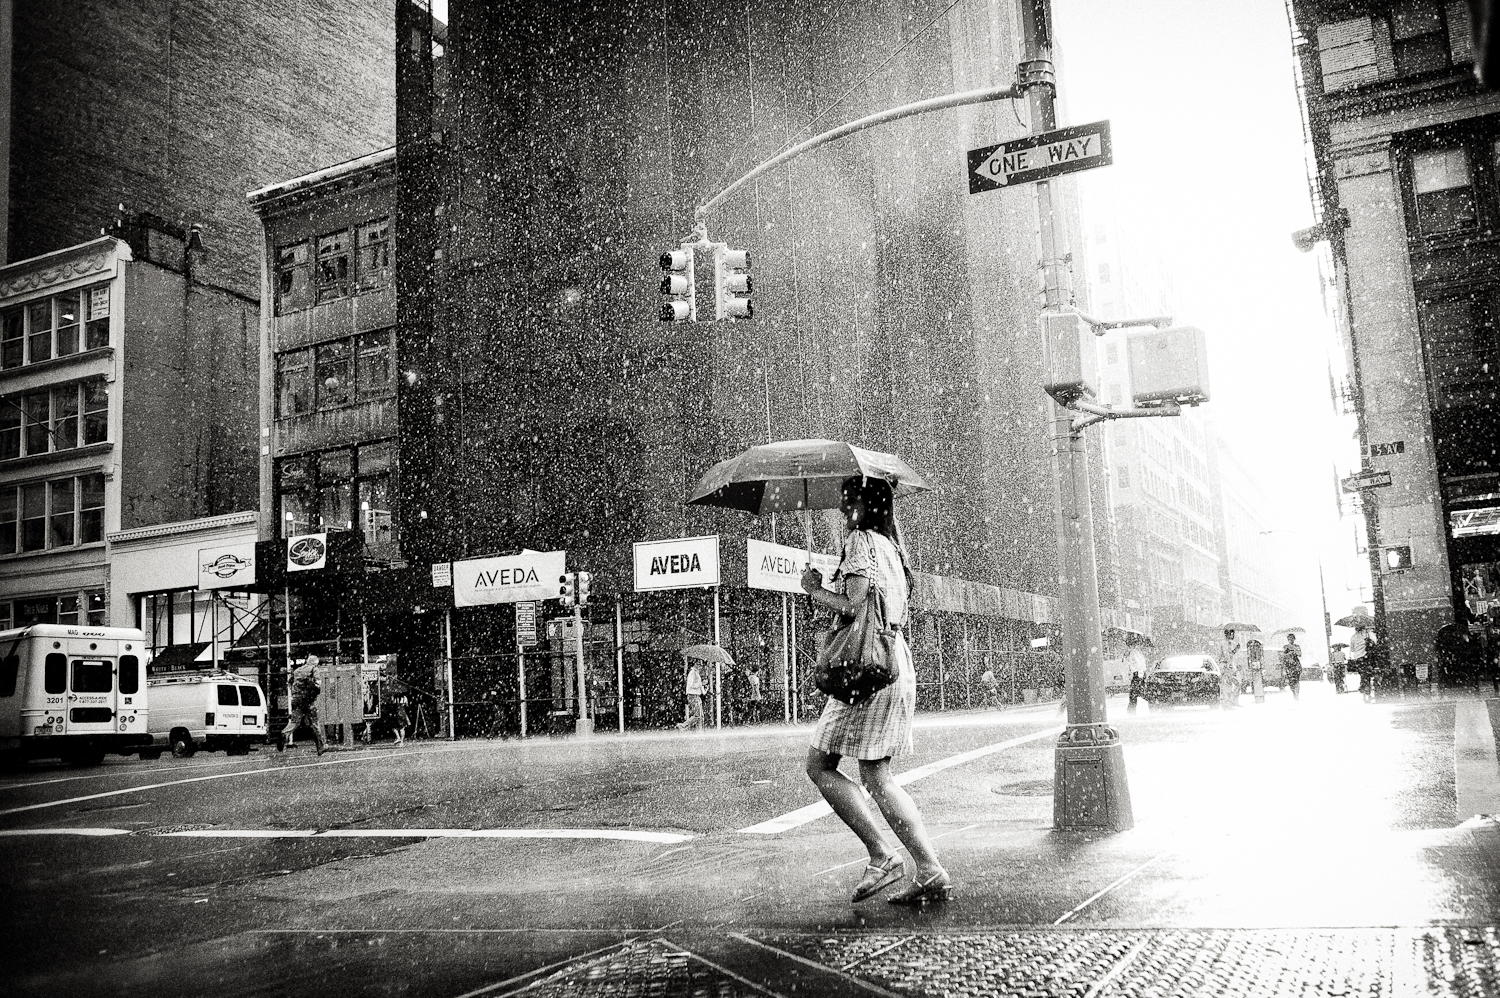 Rain on 5th Avenue by Luke Bhothipiti